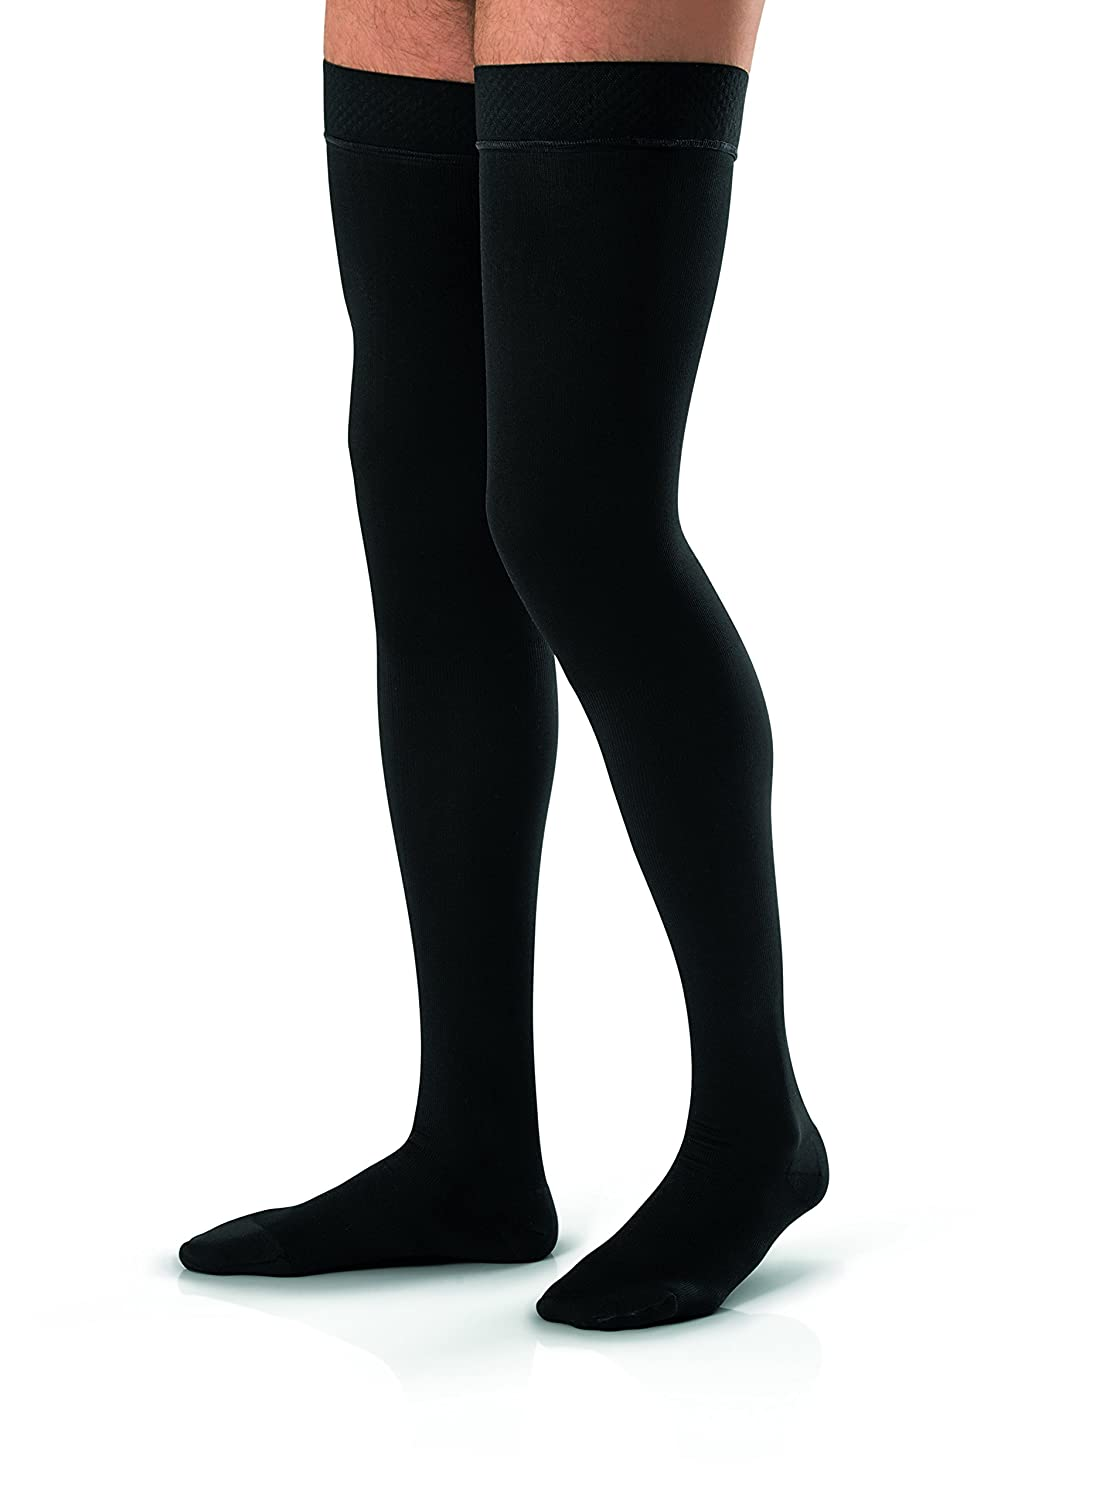 623baf54d0 Amazon.com: JOBST forMen Thigh High 20-30 mmHg Ribbed Dress Compression  Stocking, Closed Toe, Large, Black: Health & Personal Care